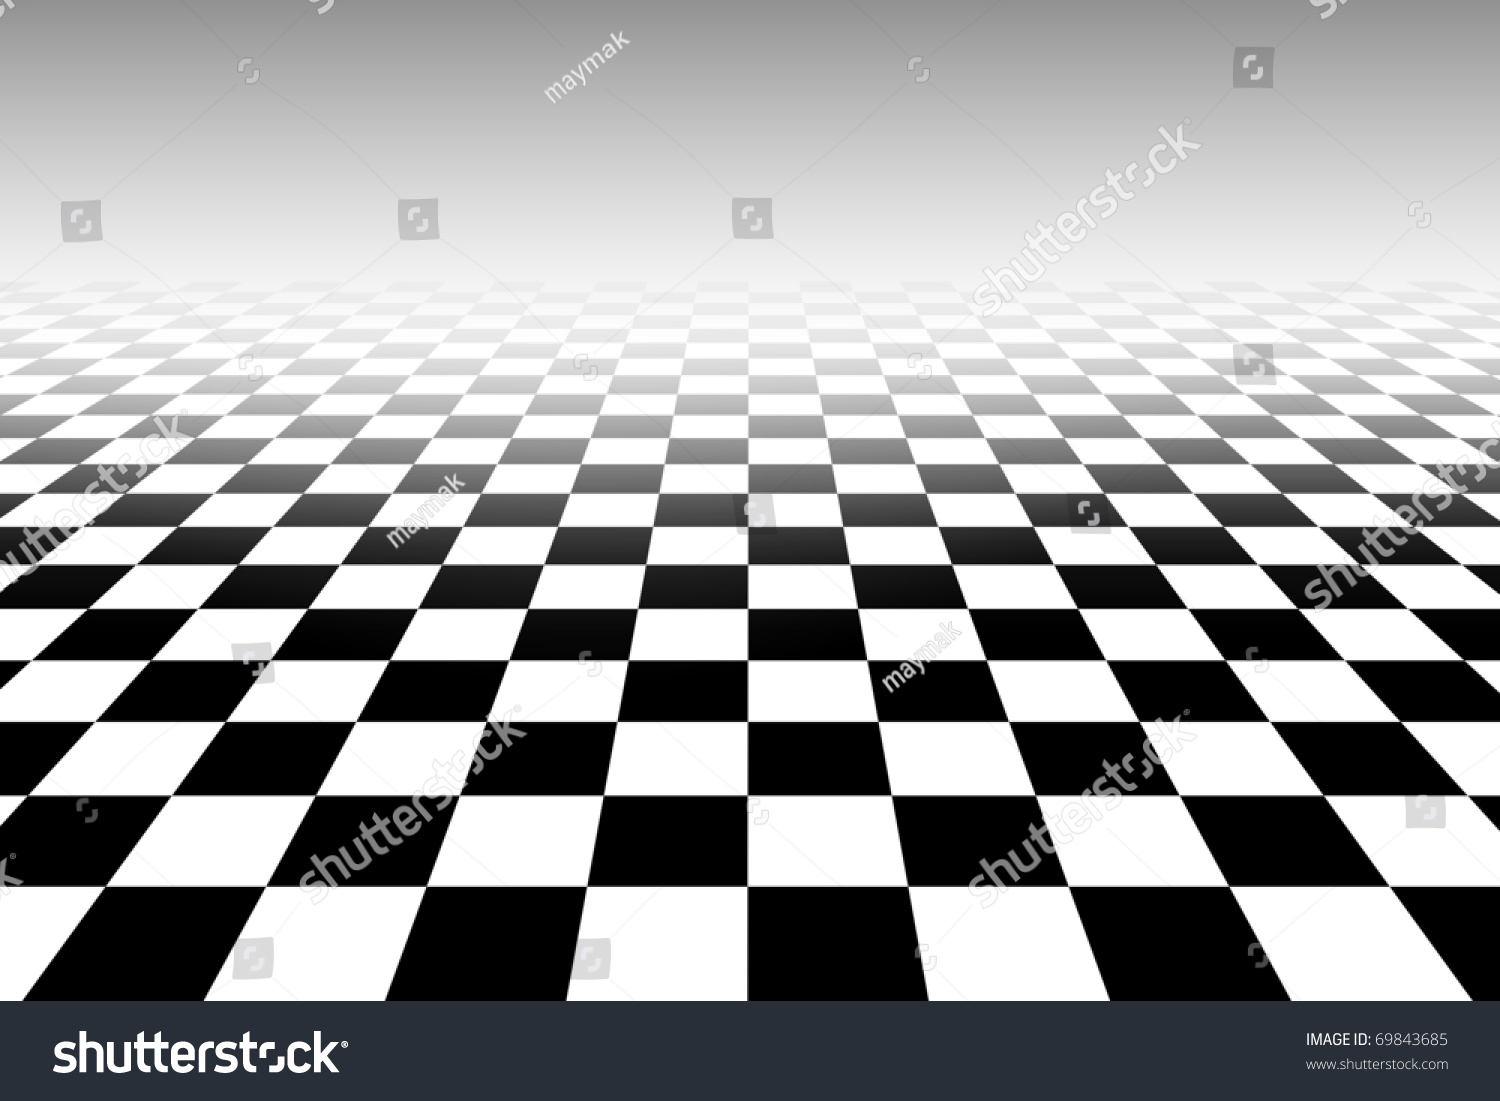 tridimensional chessboard black white pattern square stock